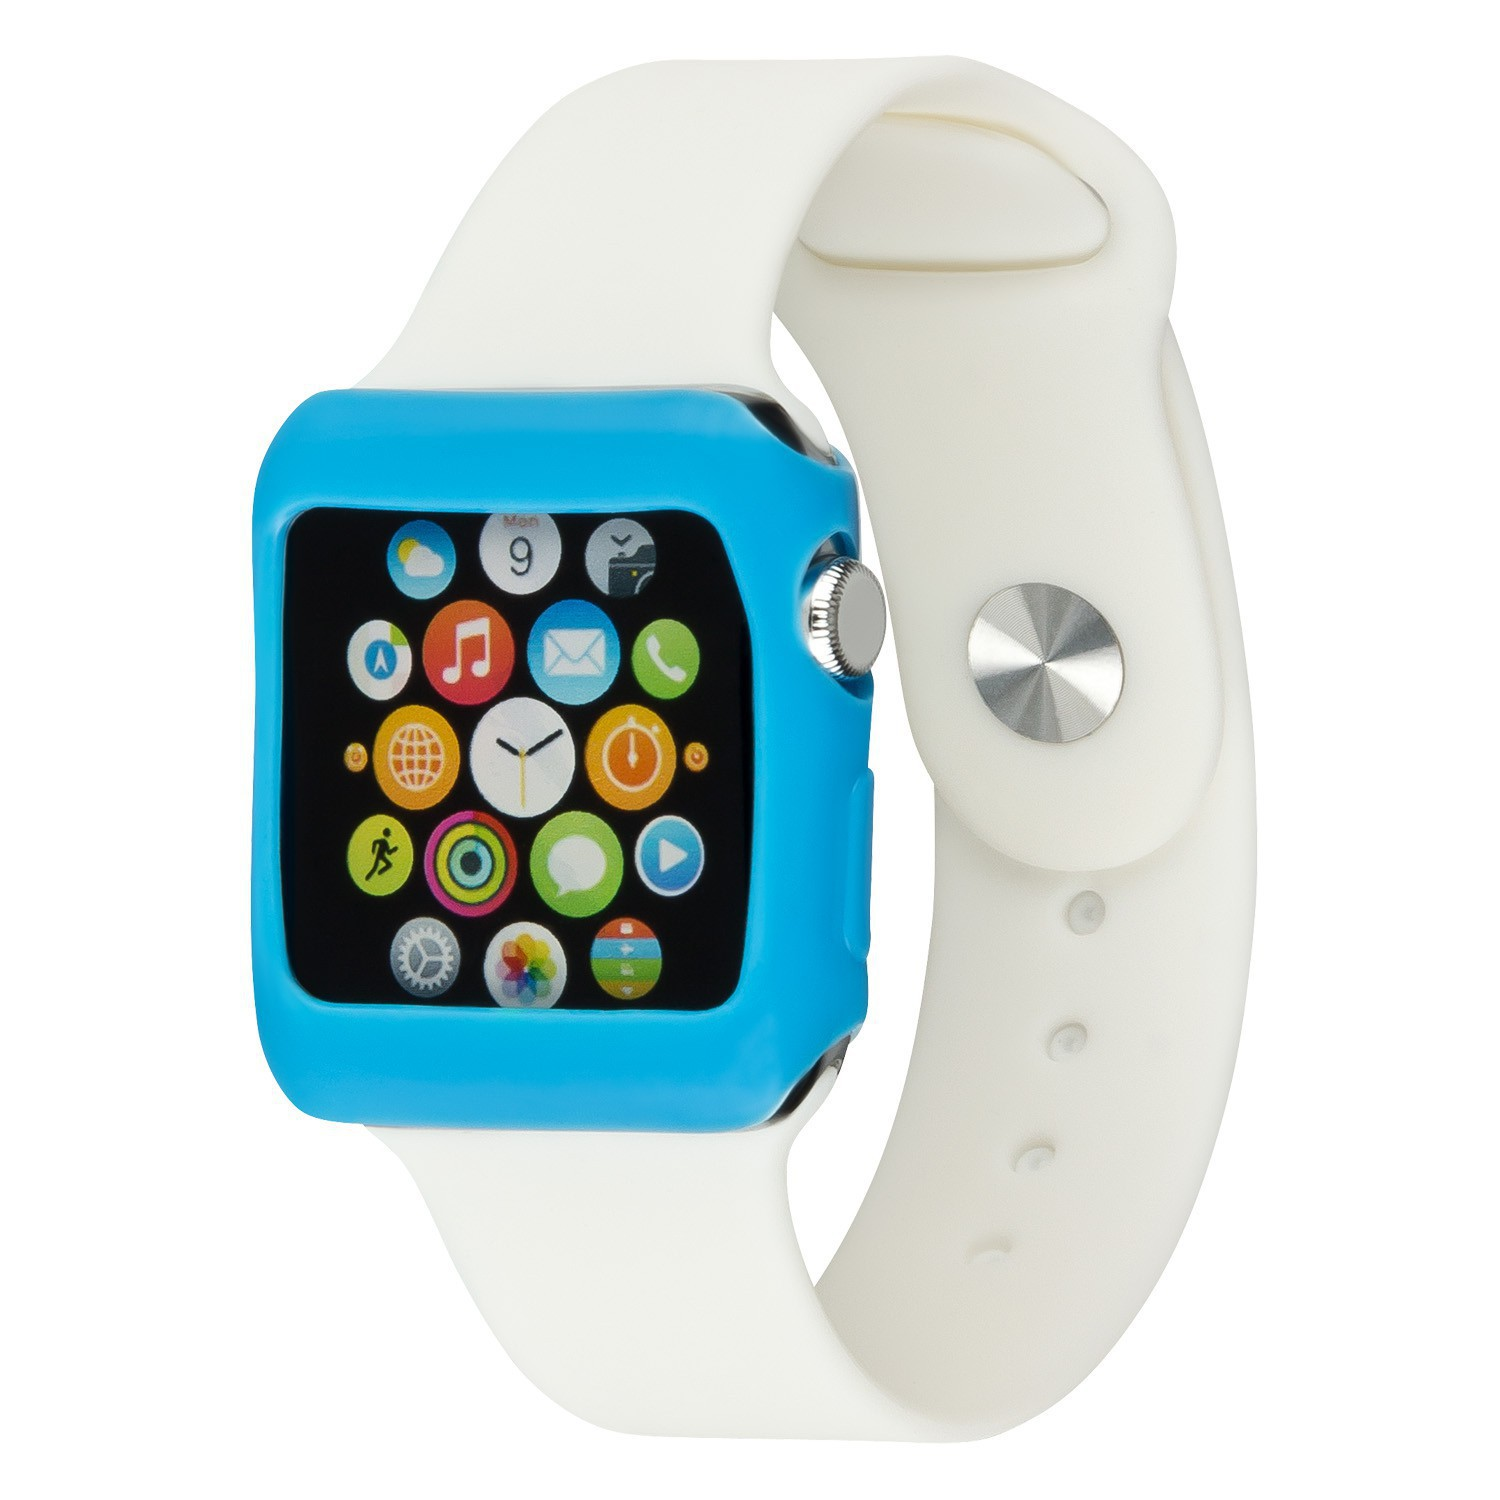 Yemota Pro Slimcase Apple Watch 42mm - Blau